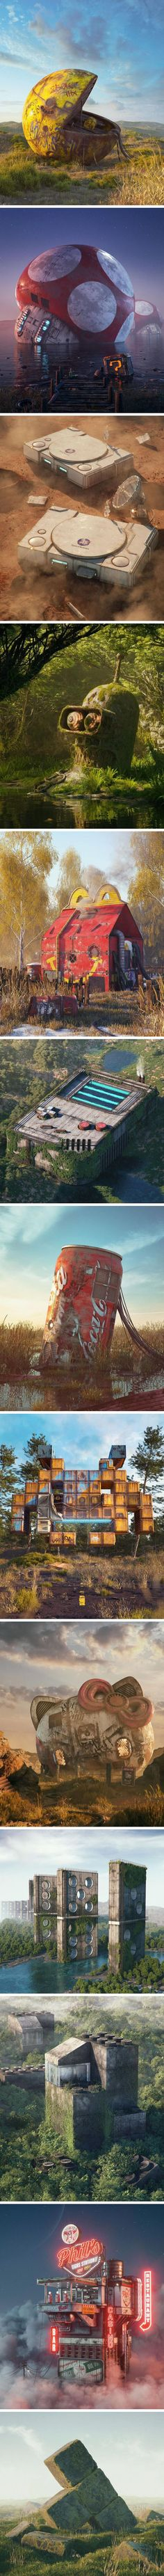 Pop Culture Apocalypse In Amazing Digital Art By Filip Hodas | Pacman, super mario, McDonald, coca cola, space invaders, hello kitty, domino, LEGO, tetsris | 90's kids, nostalgia, oldies | retro gaming